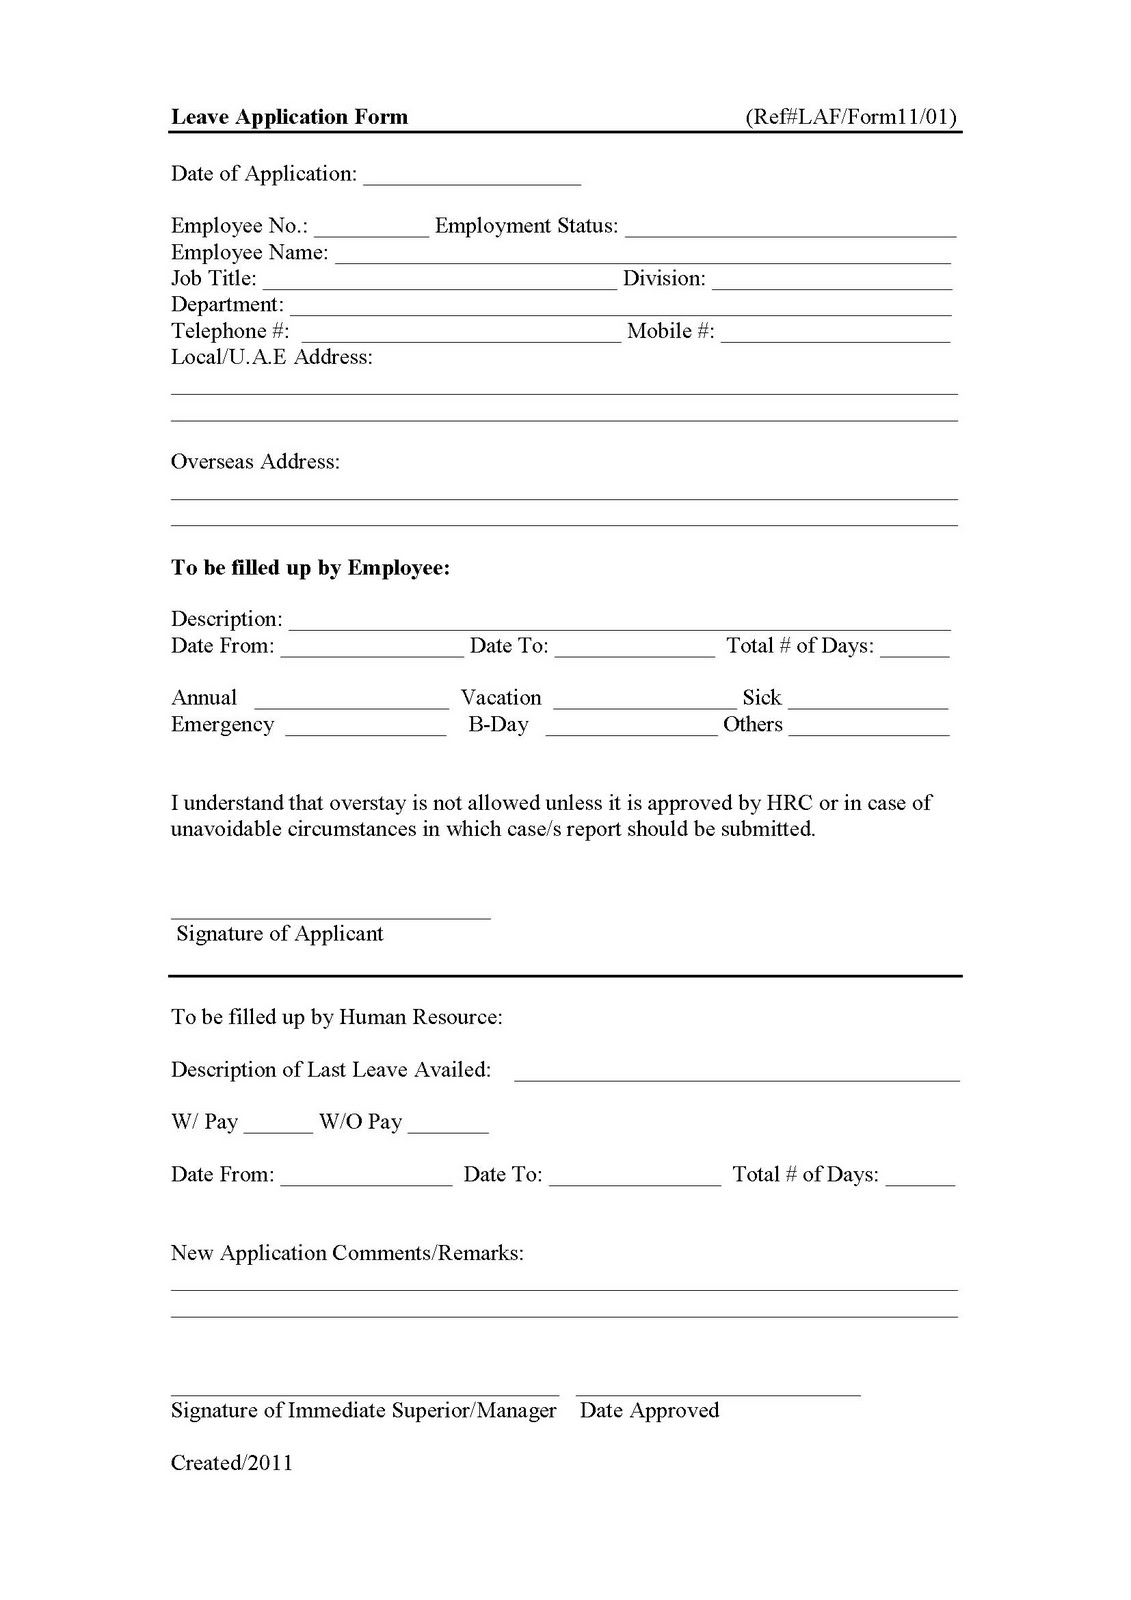 Leave Application Form. Posted By KSM At 7:03 AM  Application For Leave Form